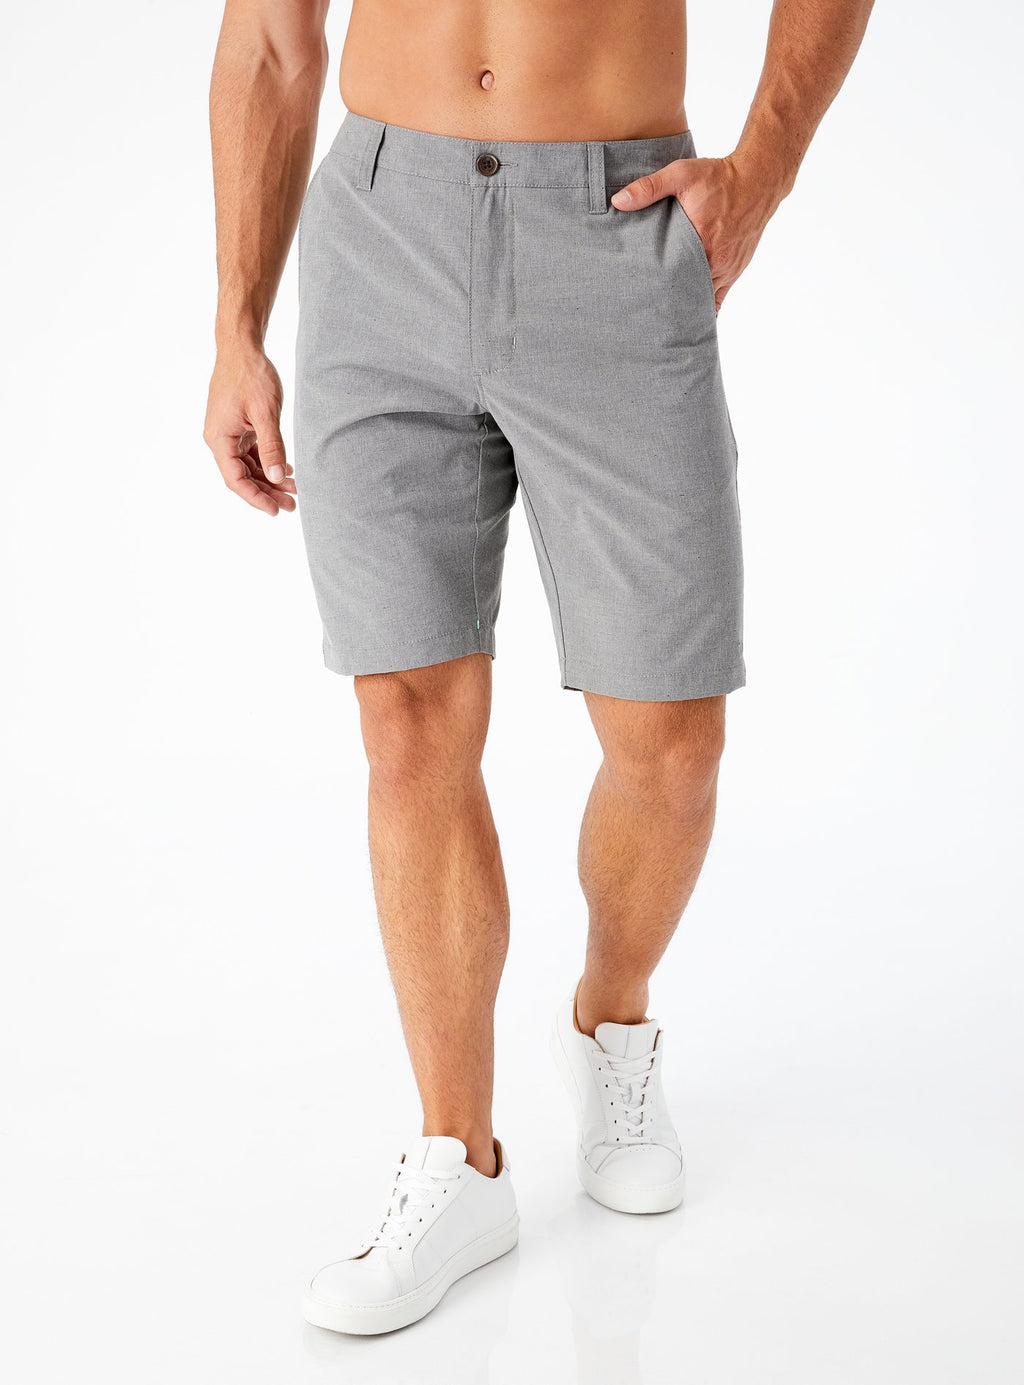 7 Diamonds- Void Hybrid Short- Charcoal